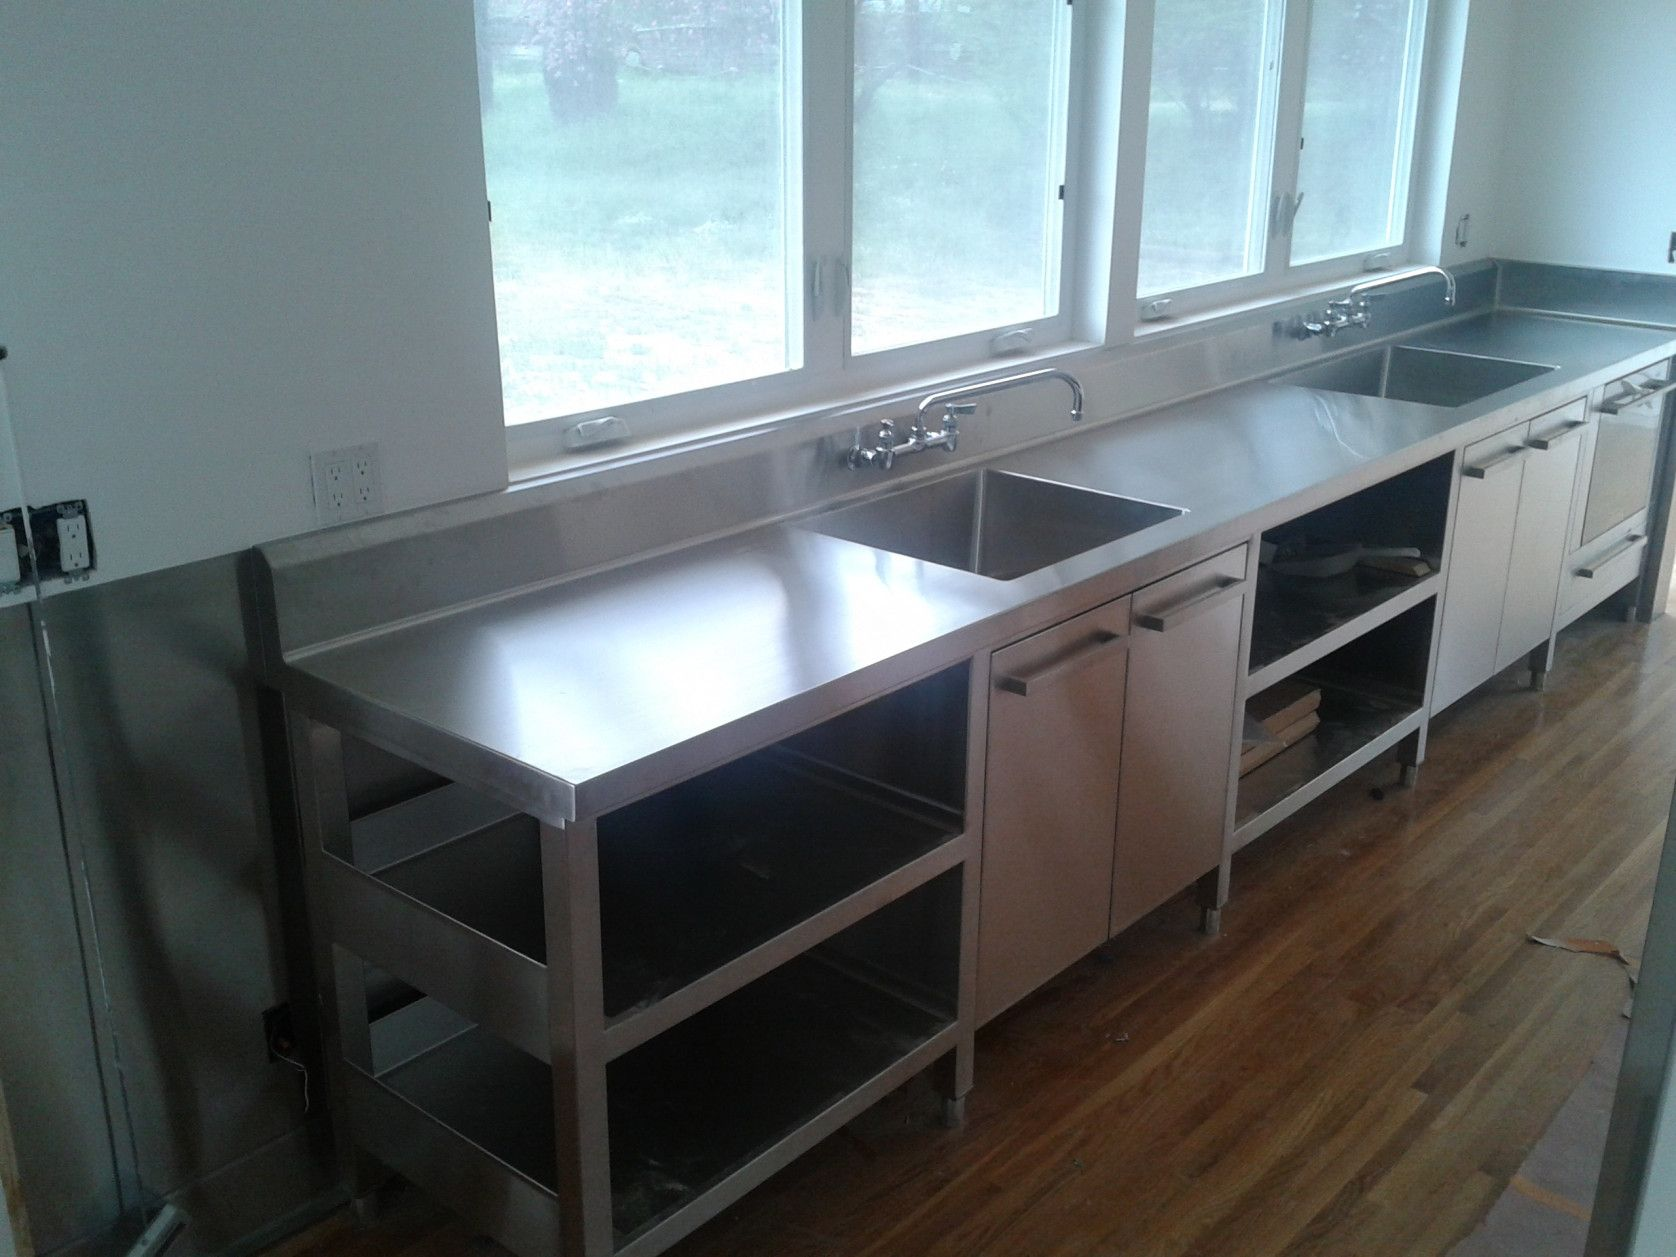 Etonnant 99+ Commercial Stainless Steel Cabinets   Kitchen Island Countertop Ideas  Check More At Http://www.planetgreenspot.com/2019 Commercu2026